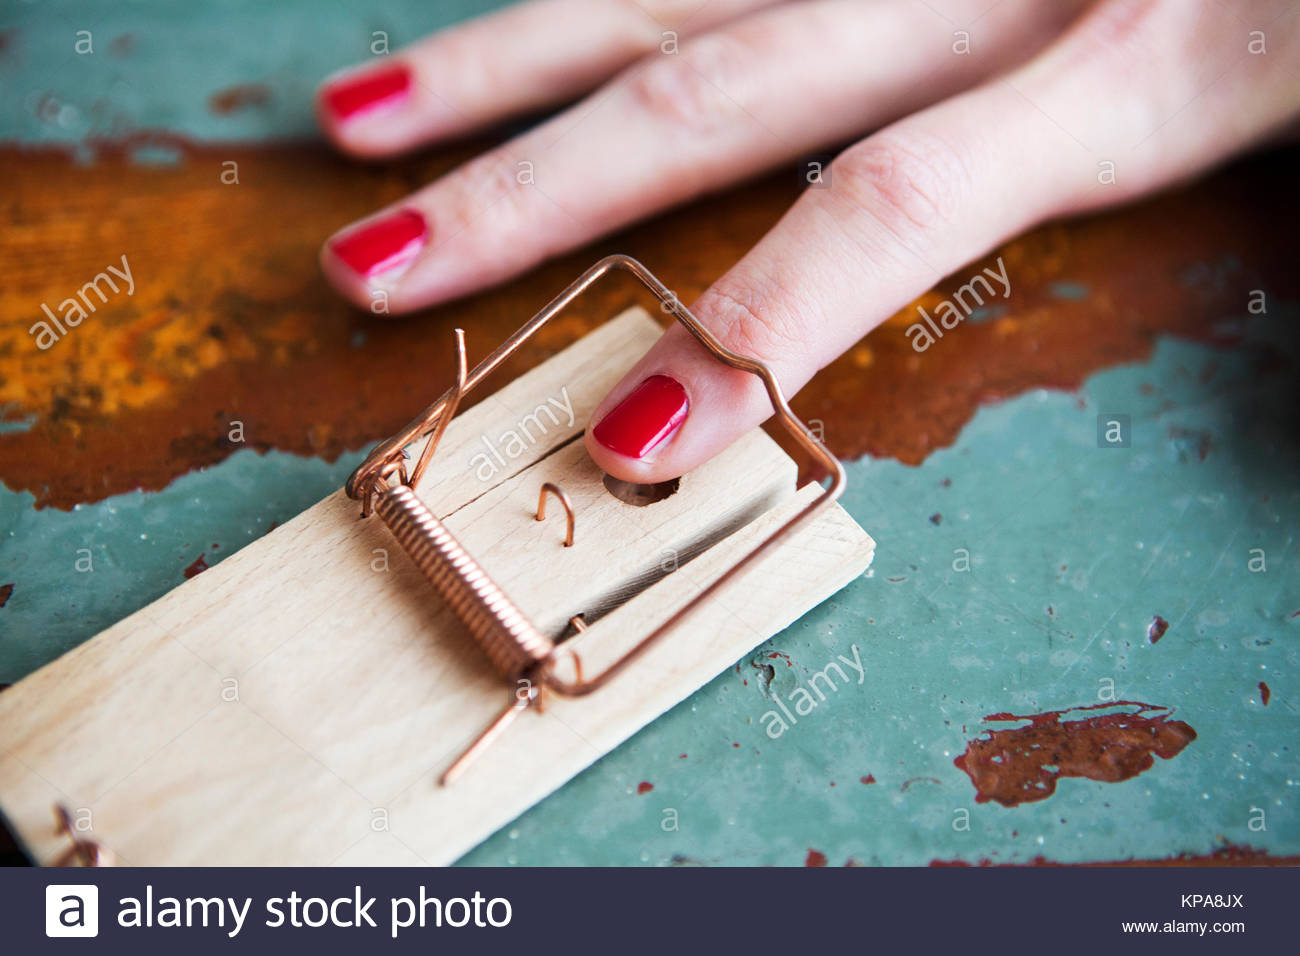 closeup of woman's finger in mousetrap - Stock Image